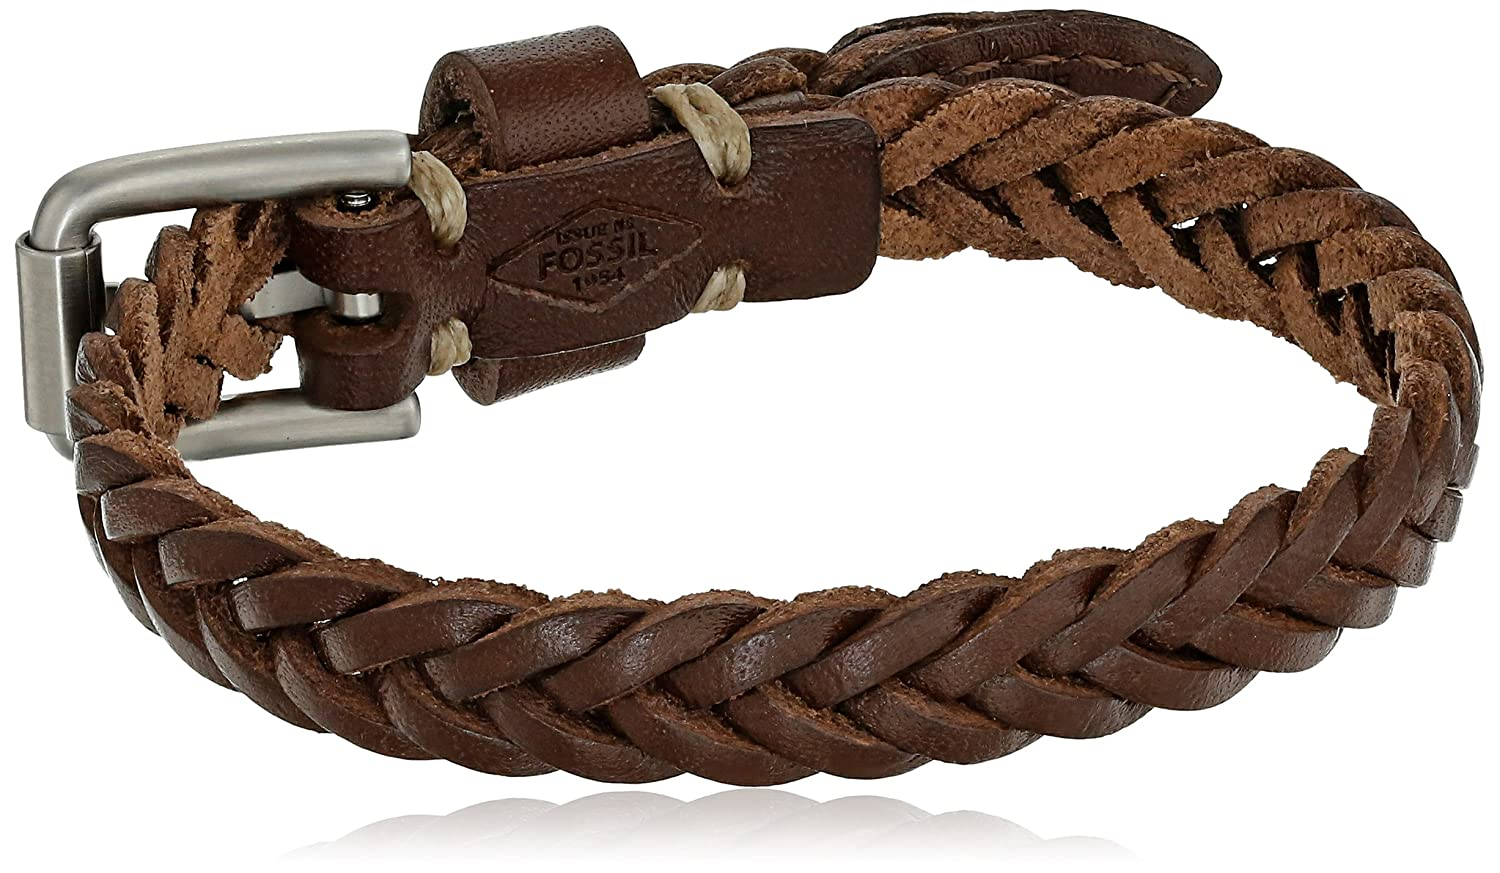 Fossil Vintage Casual Braided Leather Bracelet